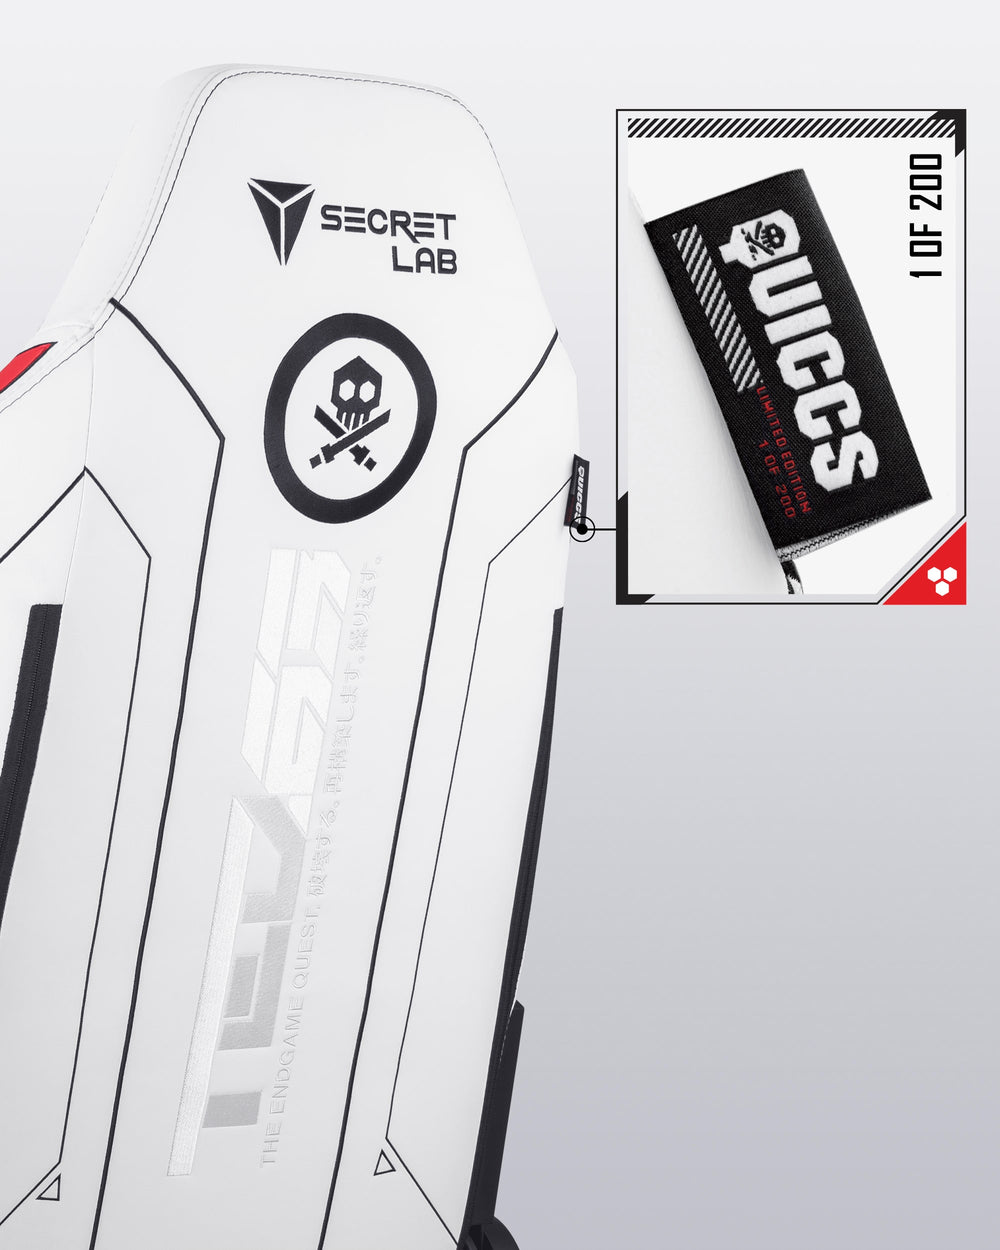 Back view of Secretlab QUICCS Edition with limited edition label